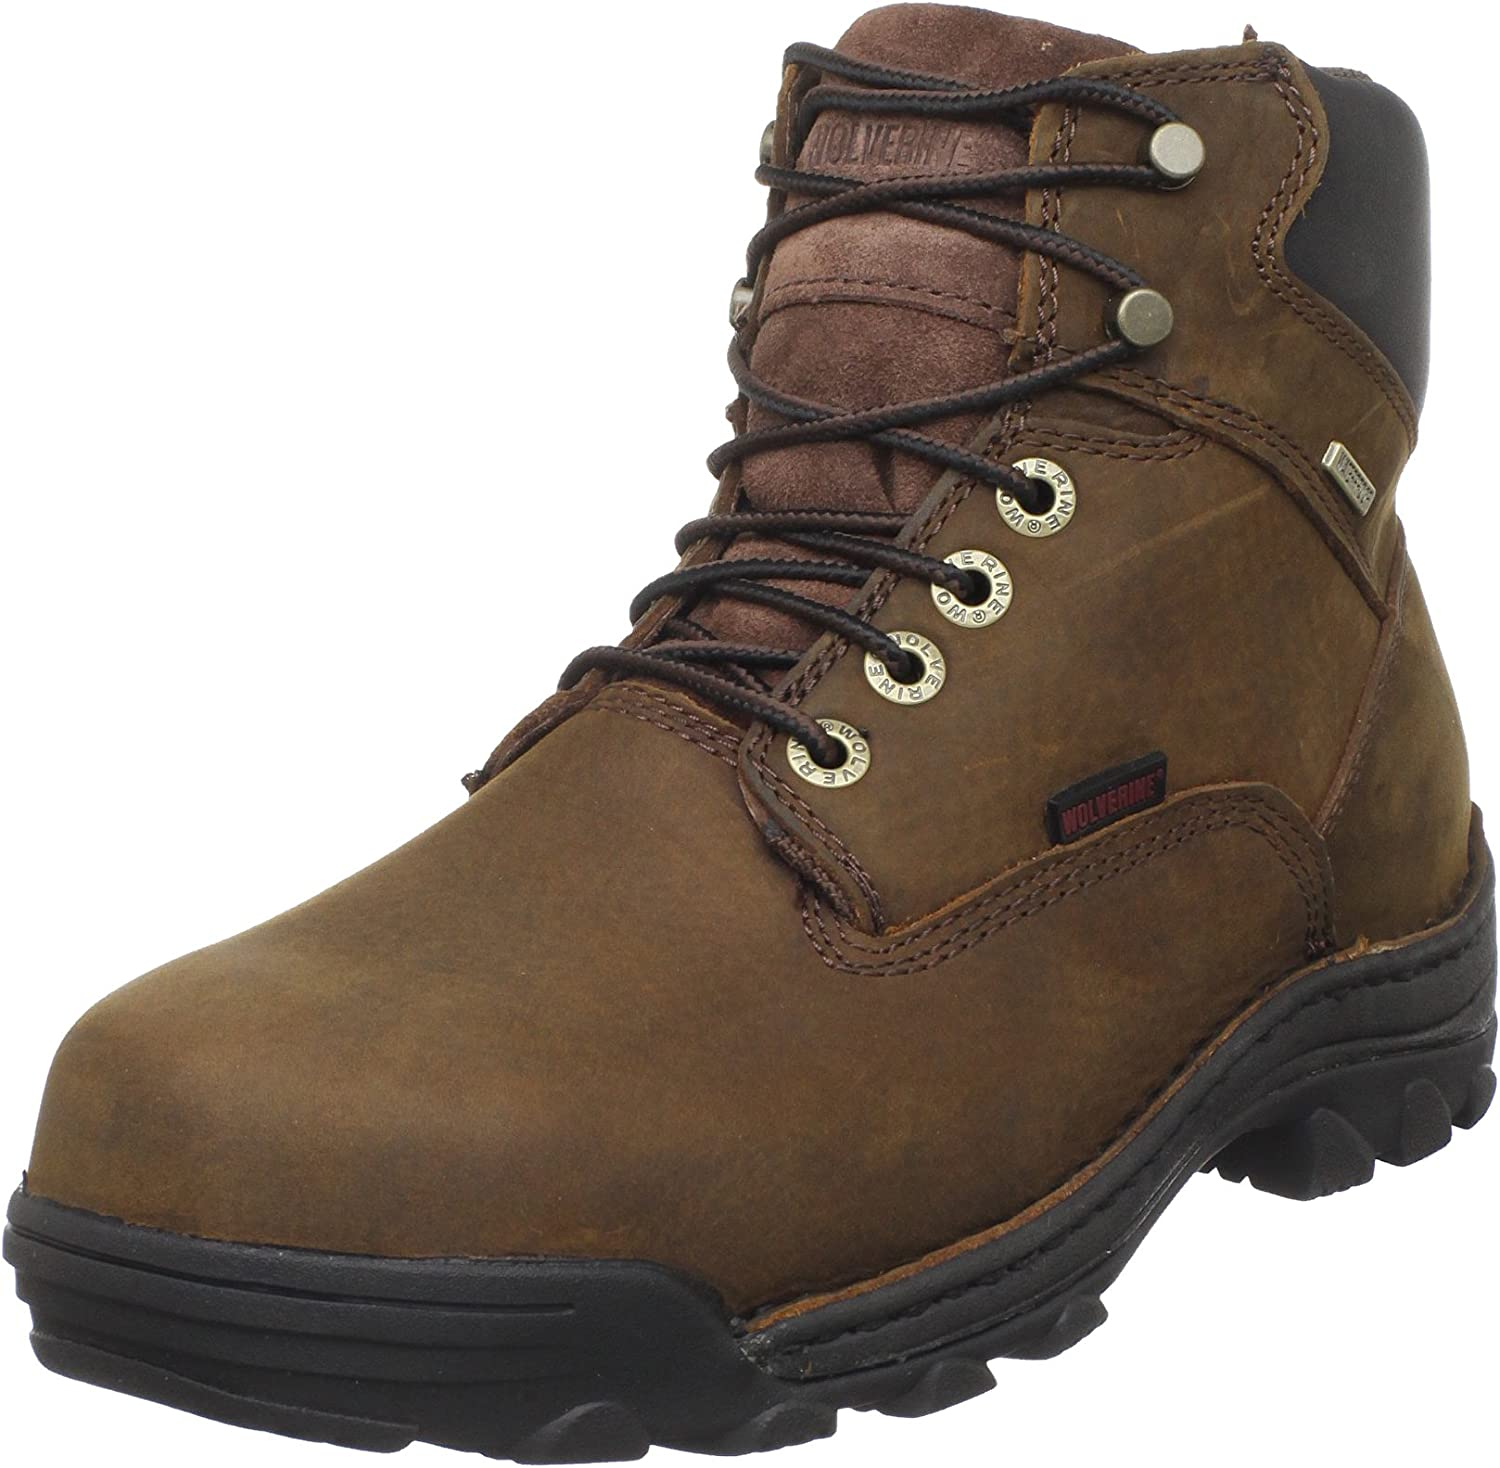 Wolverine All At the price stores are sold Men's W05484 Boot Durbin